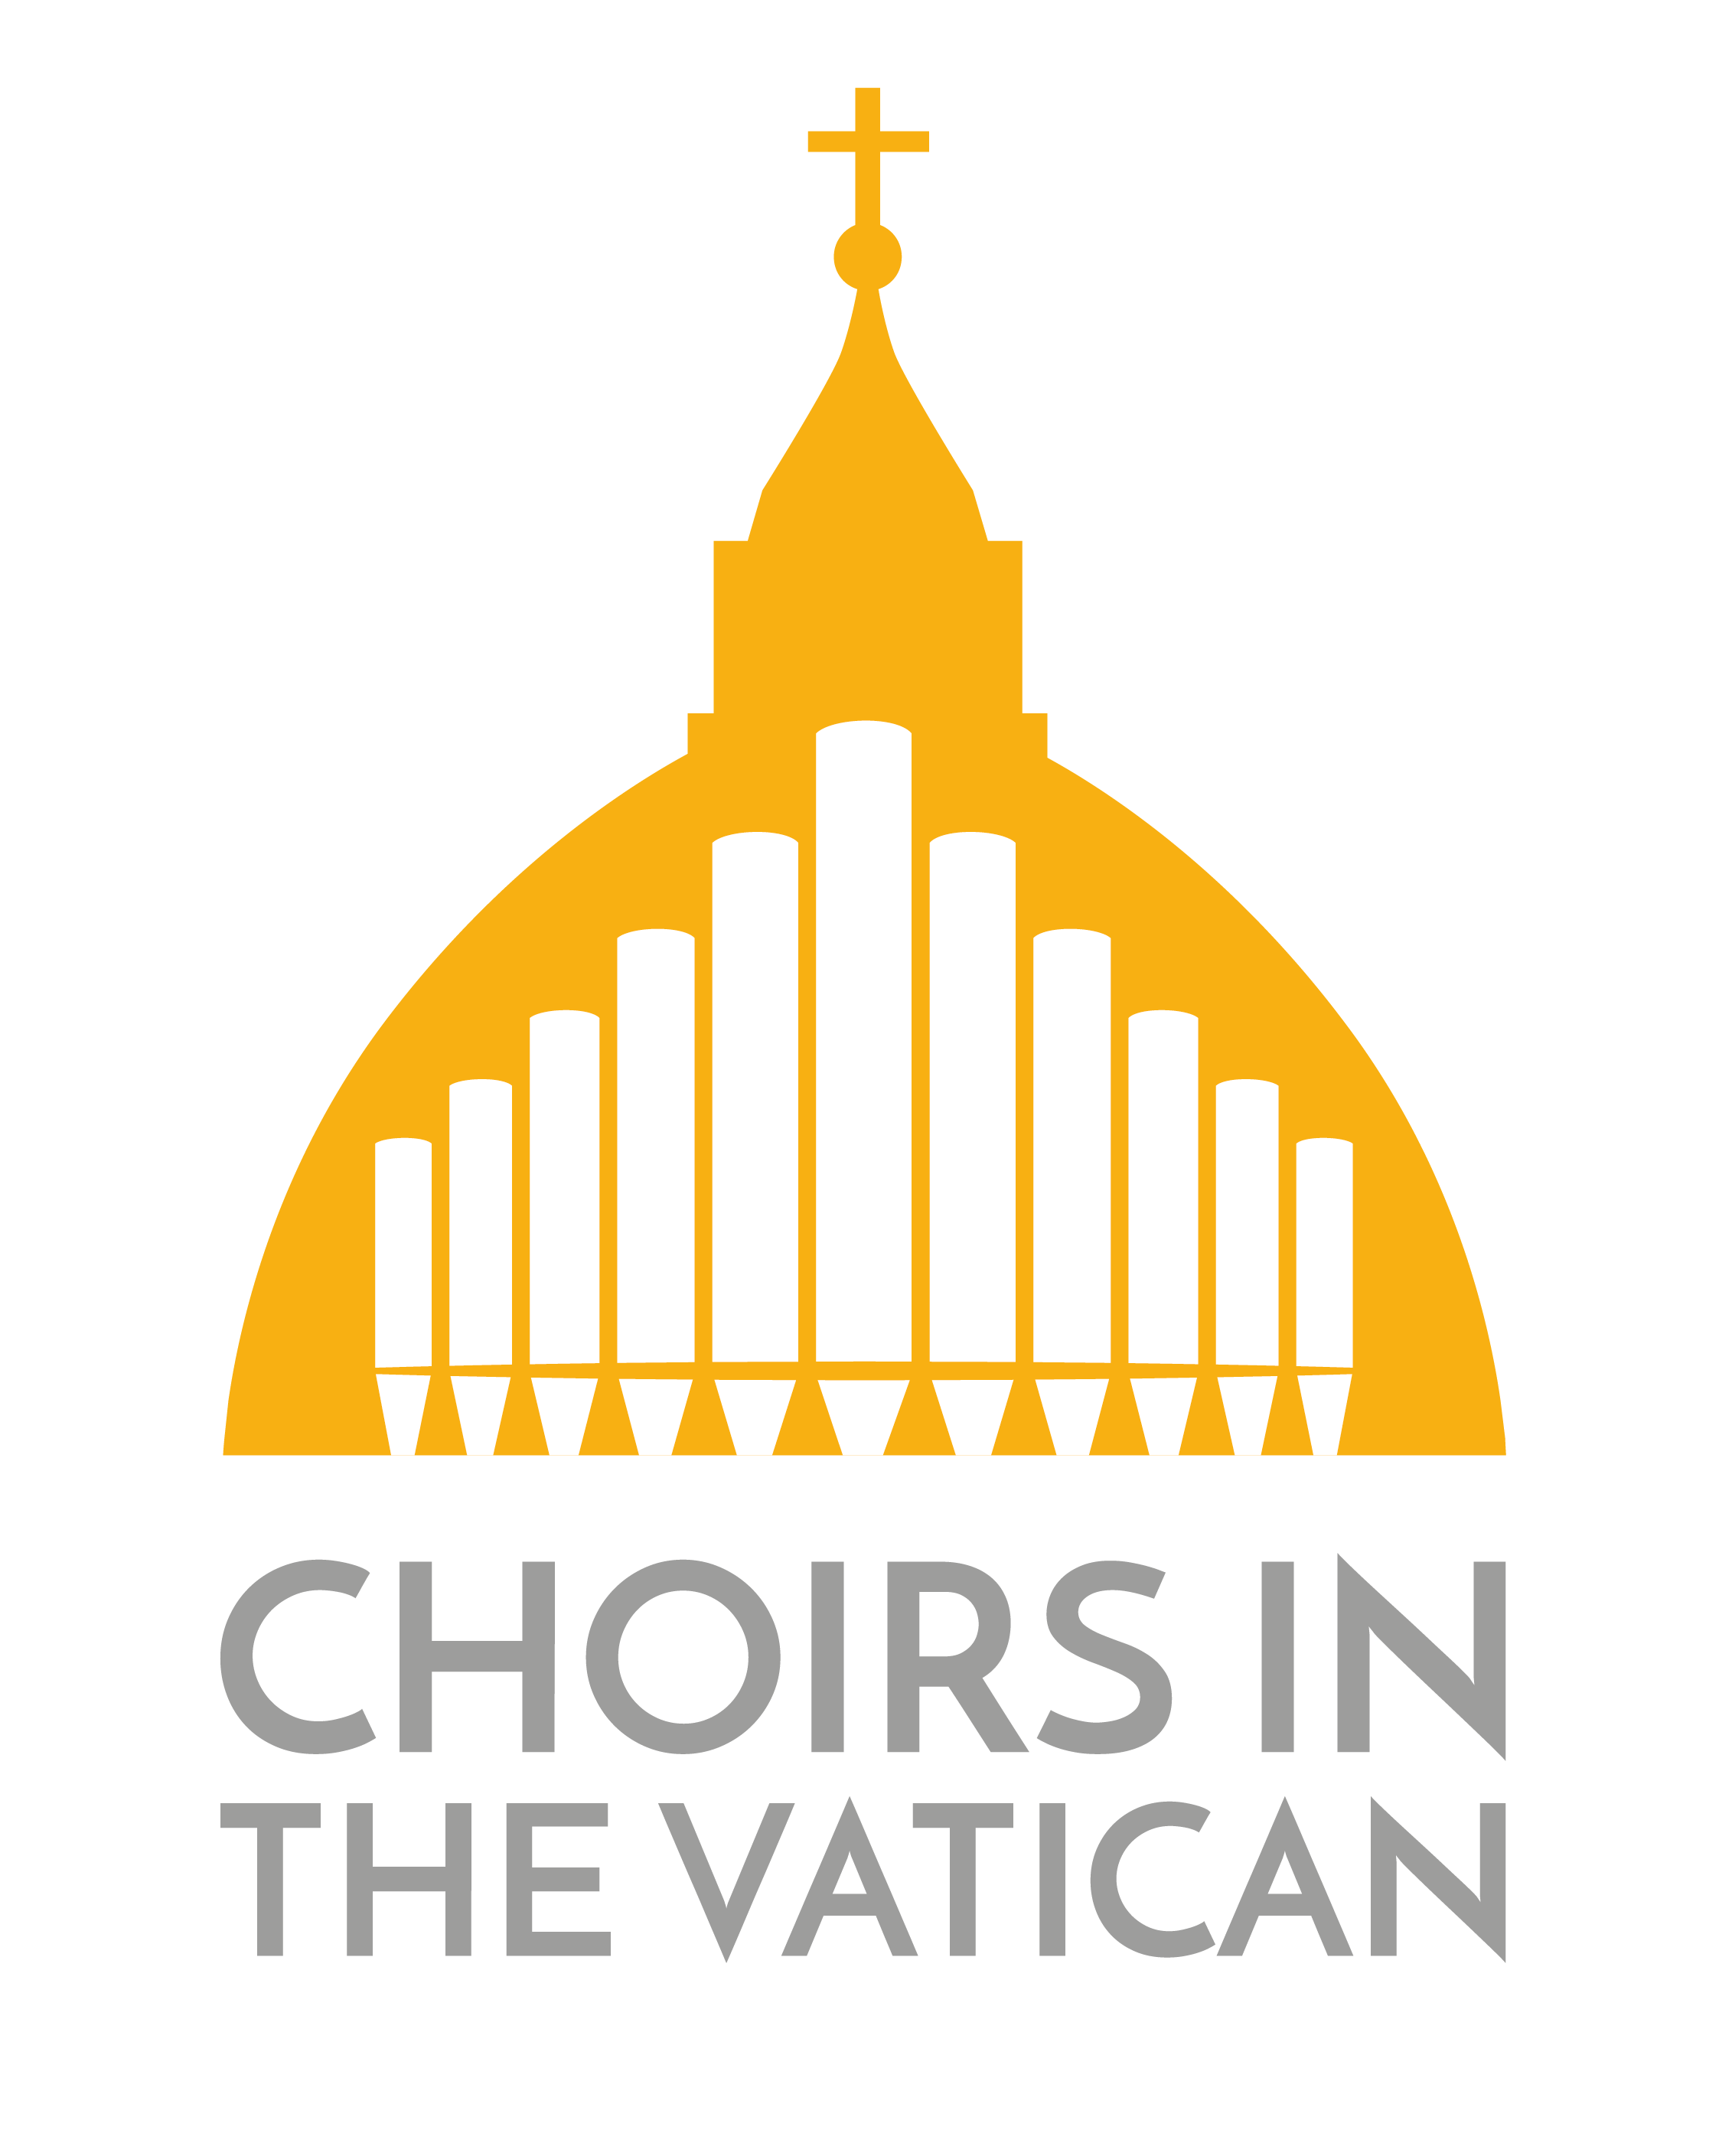 Choirs in the Vatican